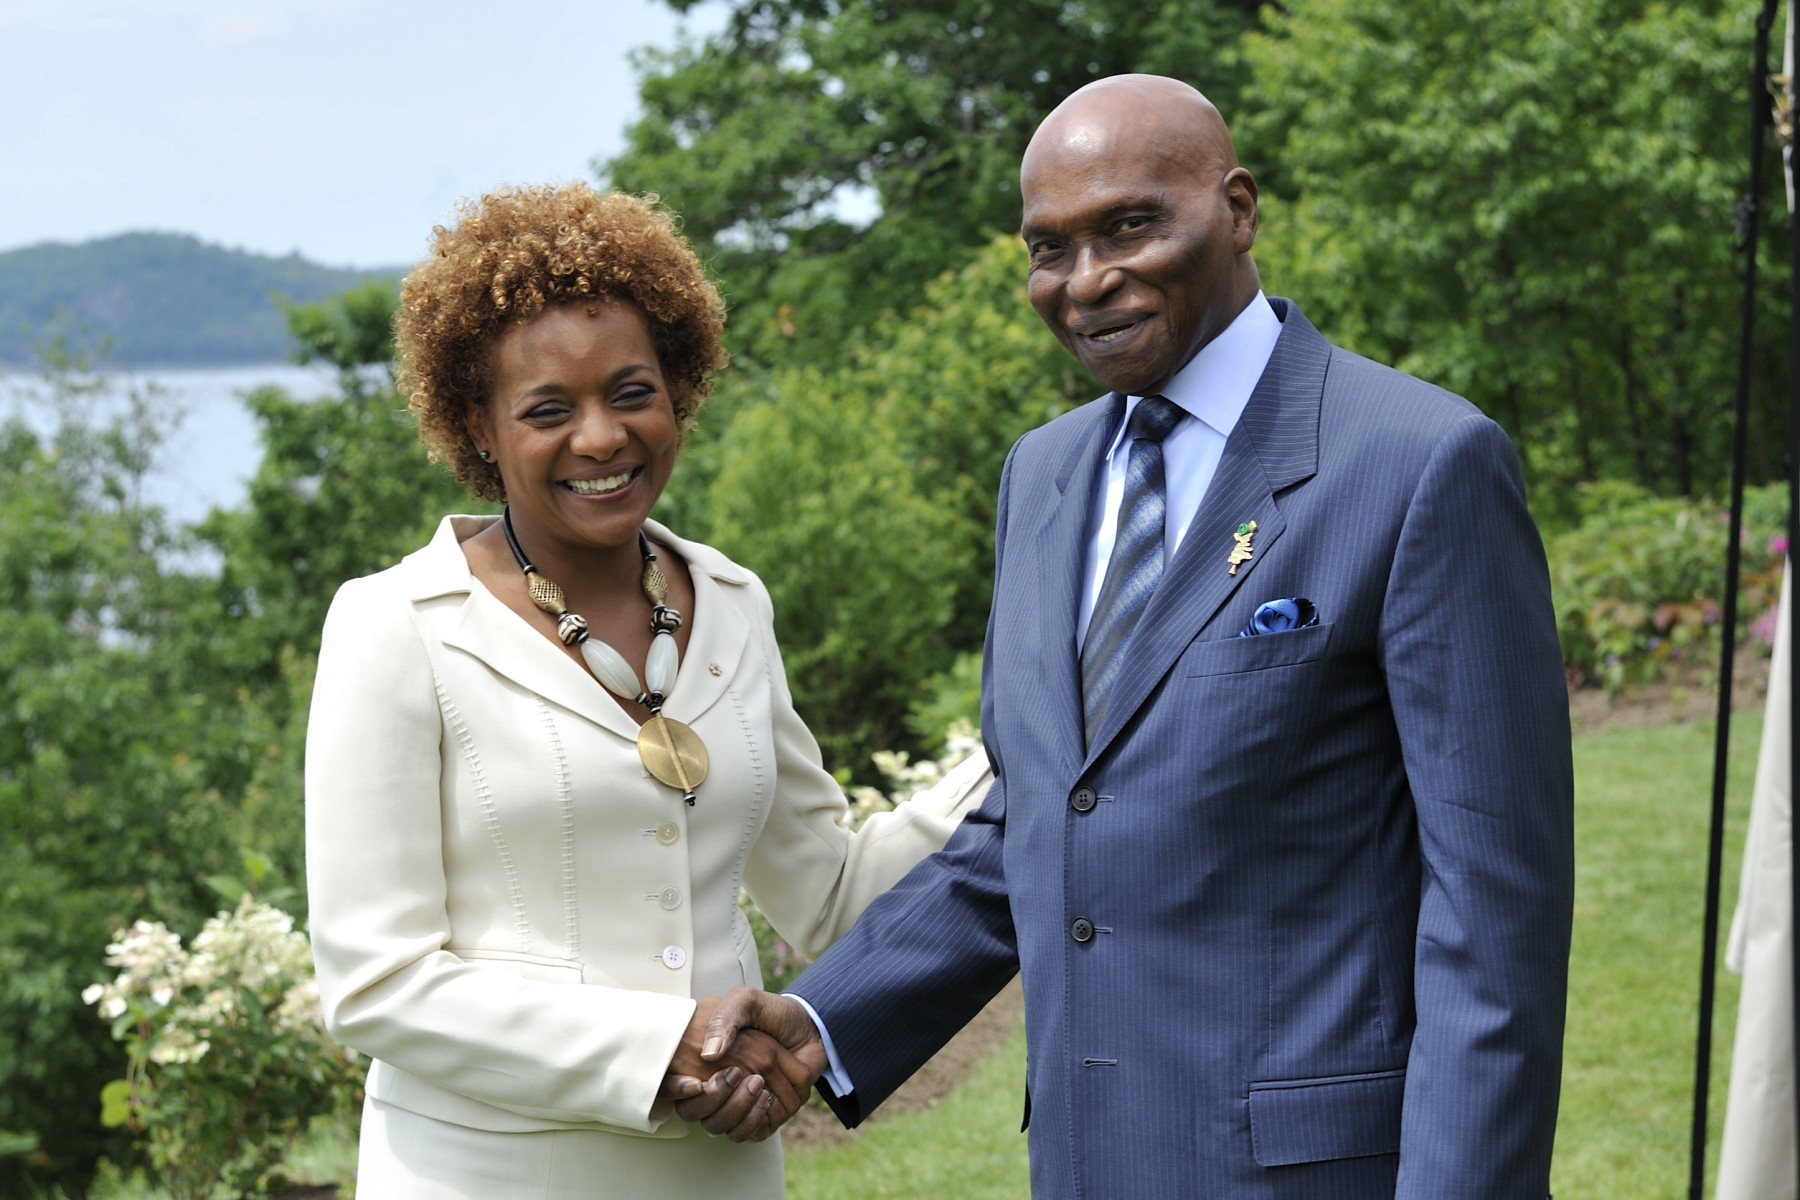 His Excellency Abdoulaye Wade, President of the Republic of Senegal